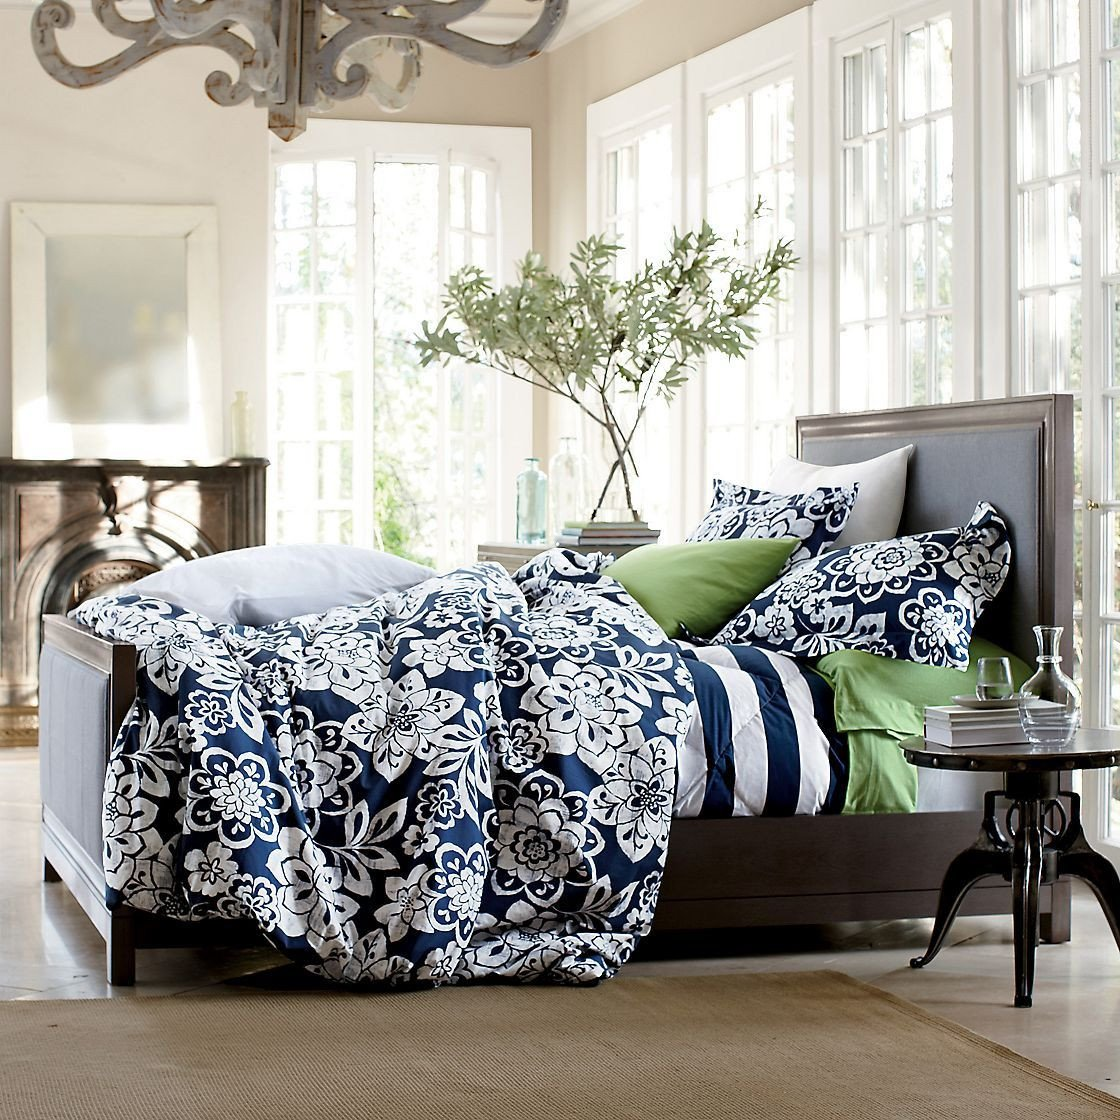 Navy and White Bedroom Best Of Pany Store Duvet Cover I M Thinking I Need A New Bed